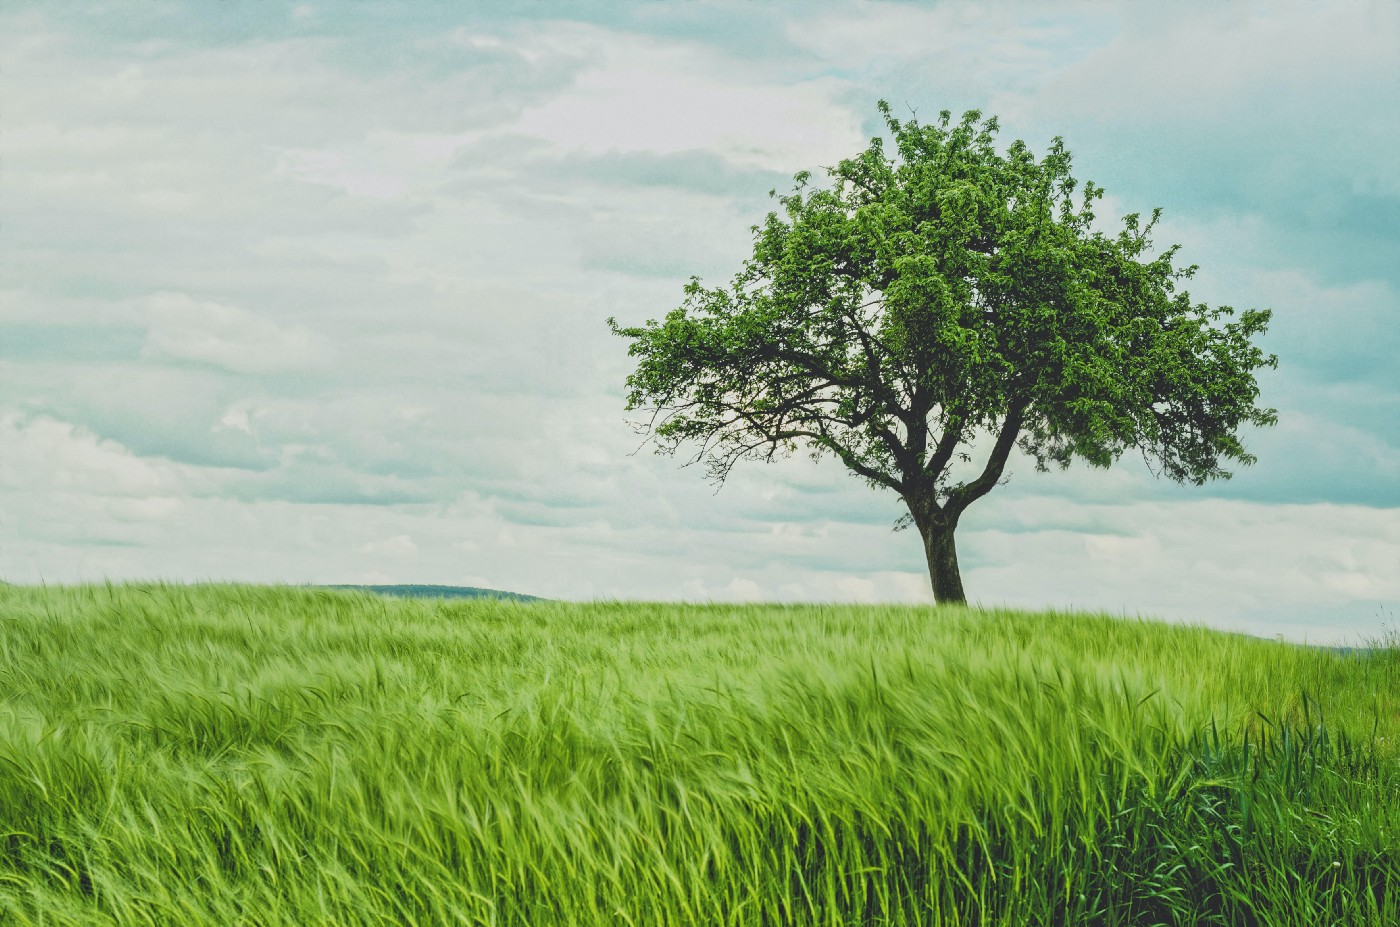 Green pasture with a tree and a clouded sky